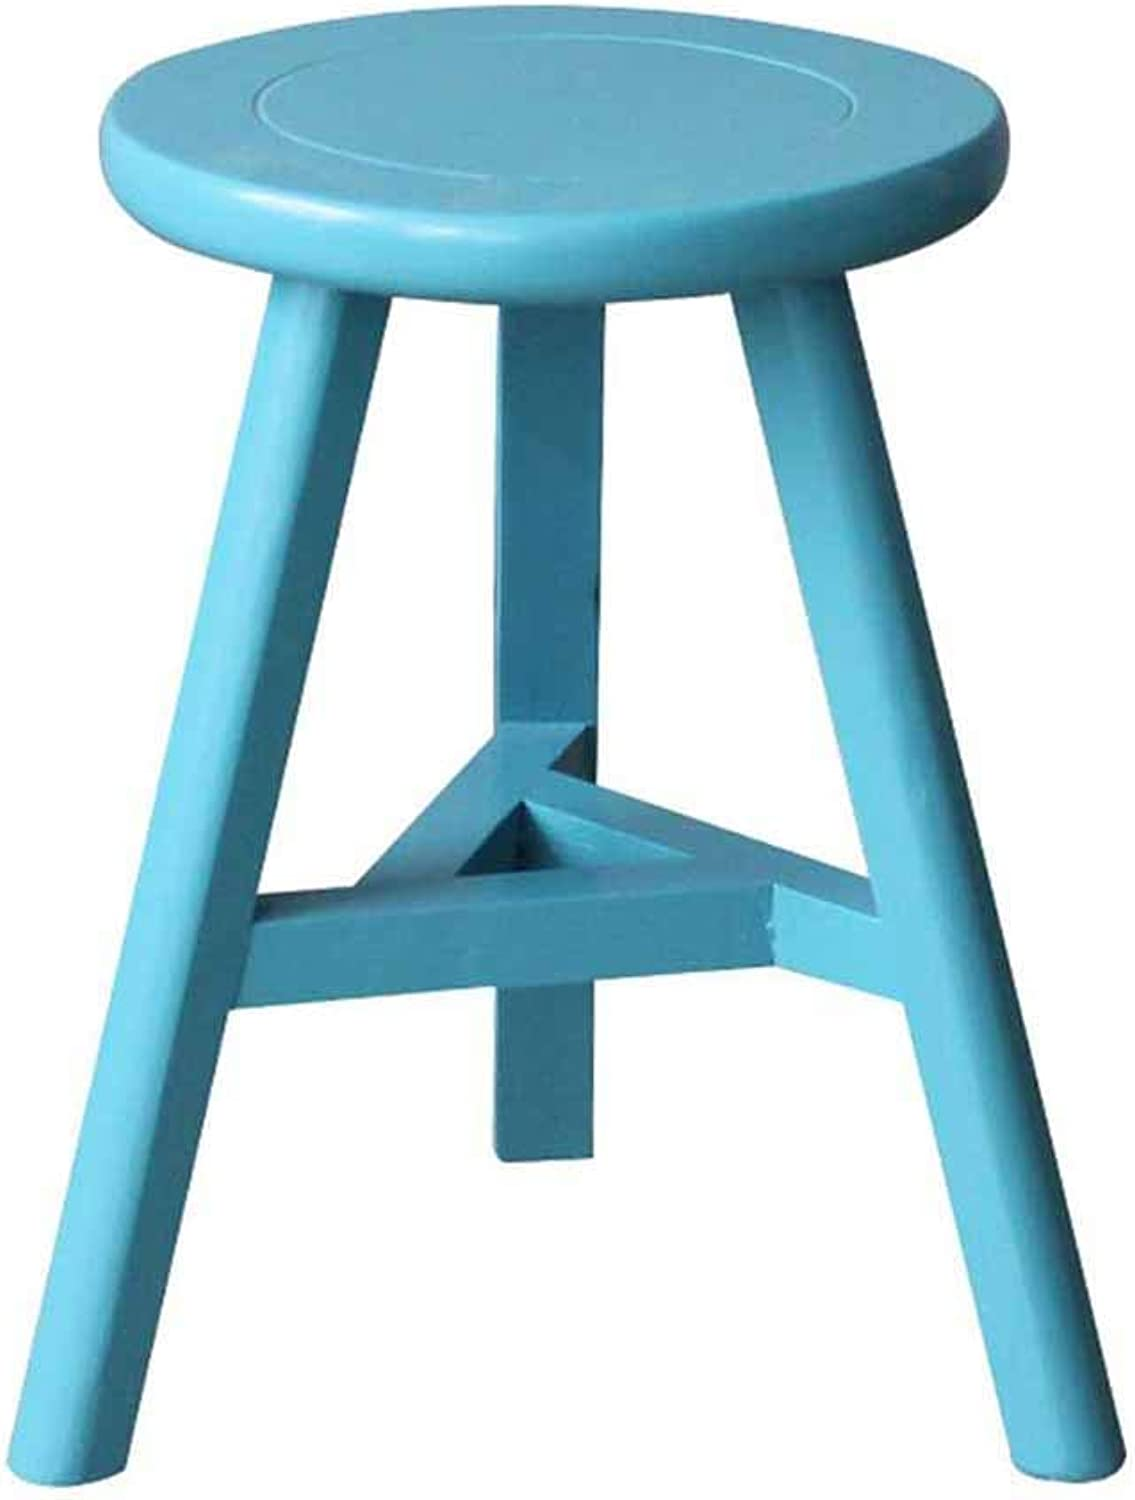 Solid Wood Stool Home Stool Low Stool Wood shoes Bench Simple Creative Dining Table Stool,bluee